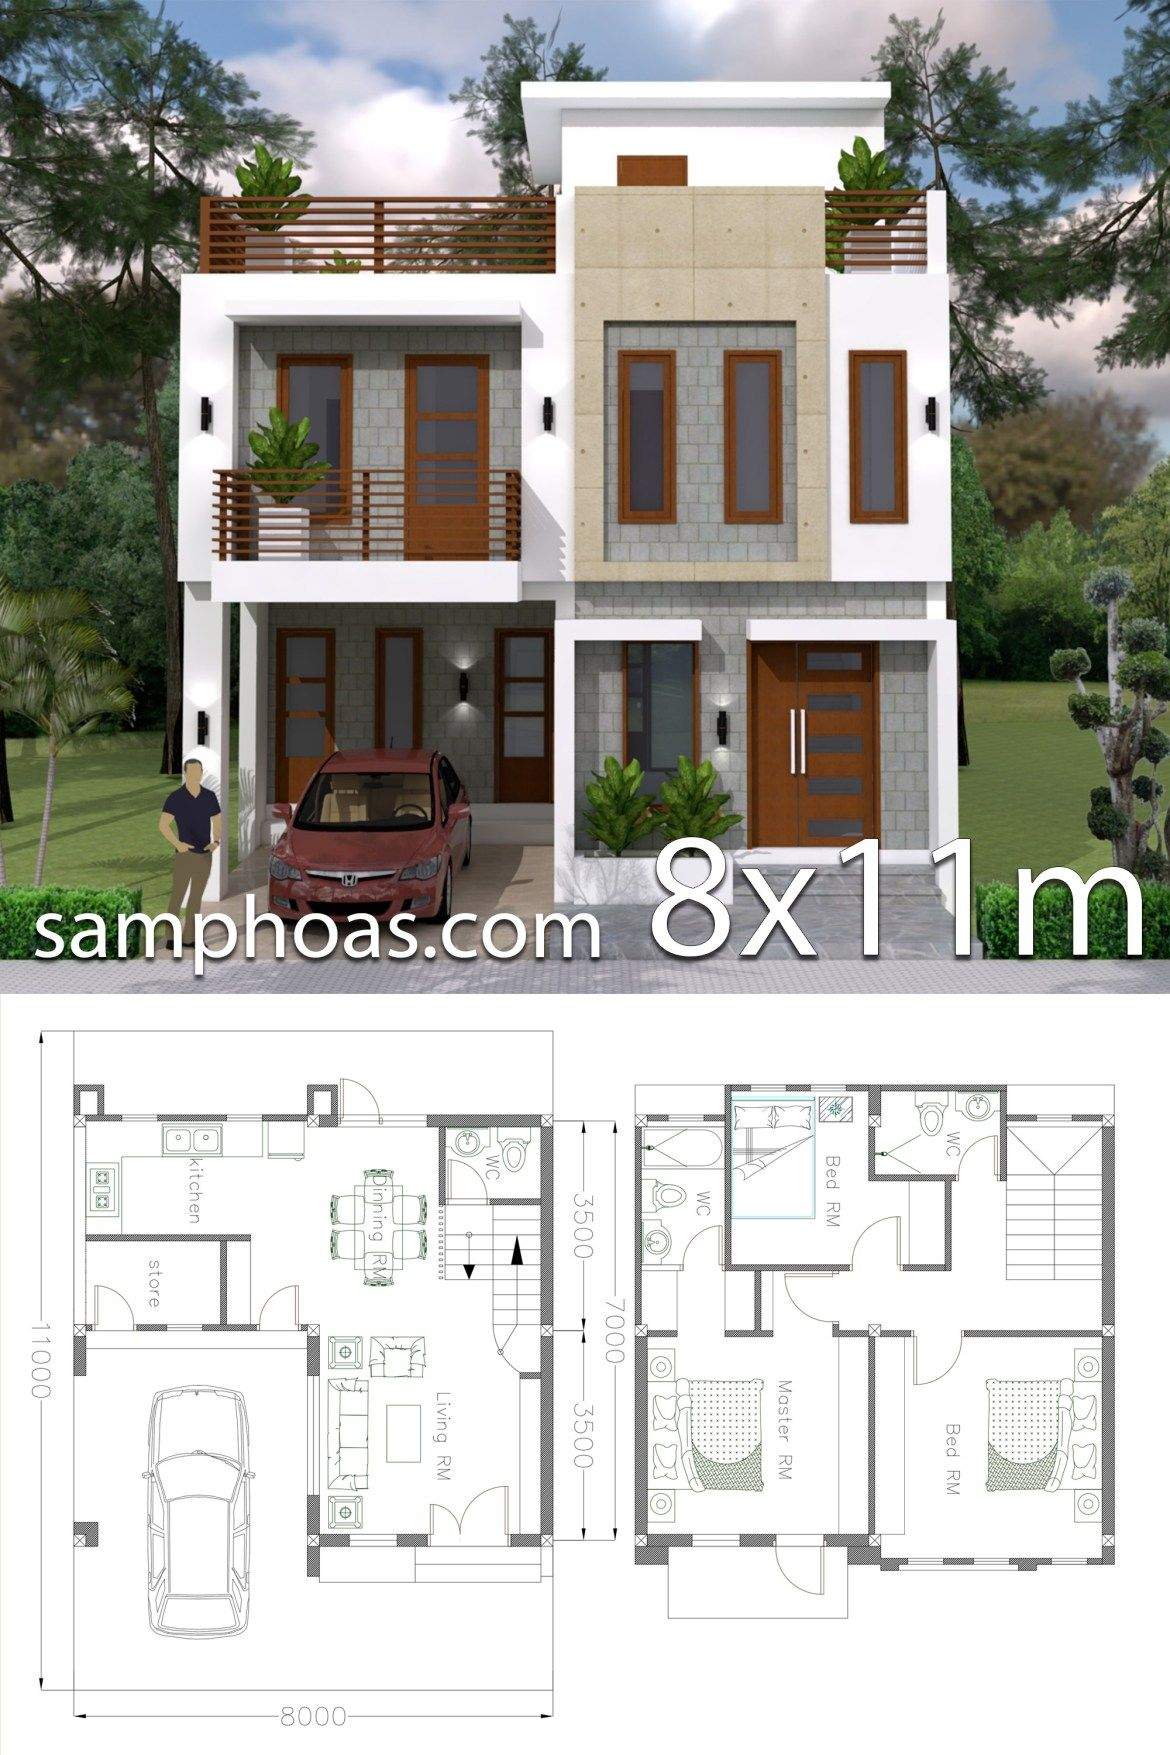 Home Design Plan 8x11m With 3 Bedrooms Samphoas Plansearch